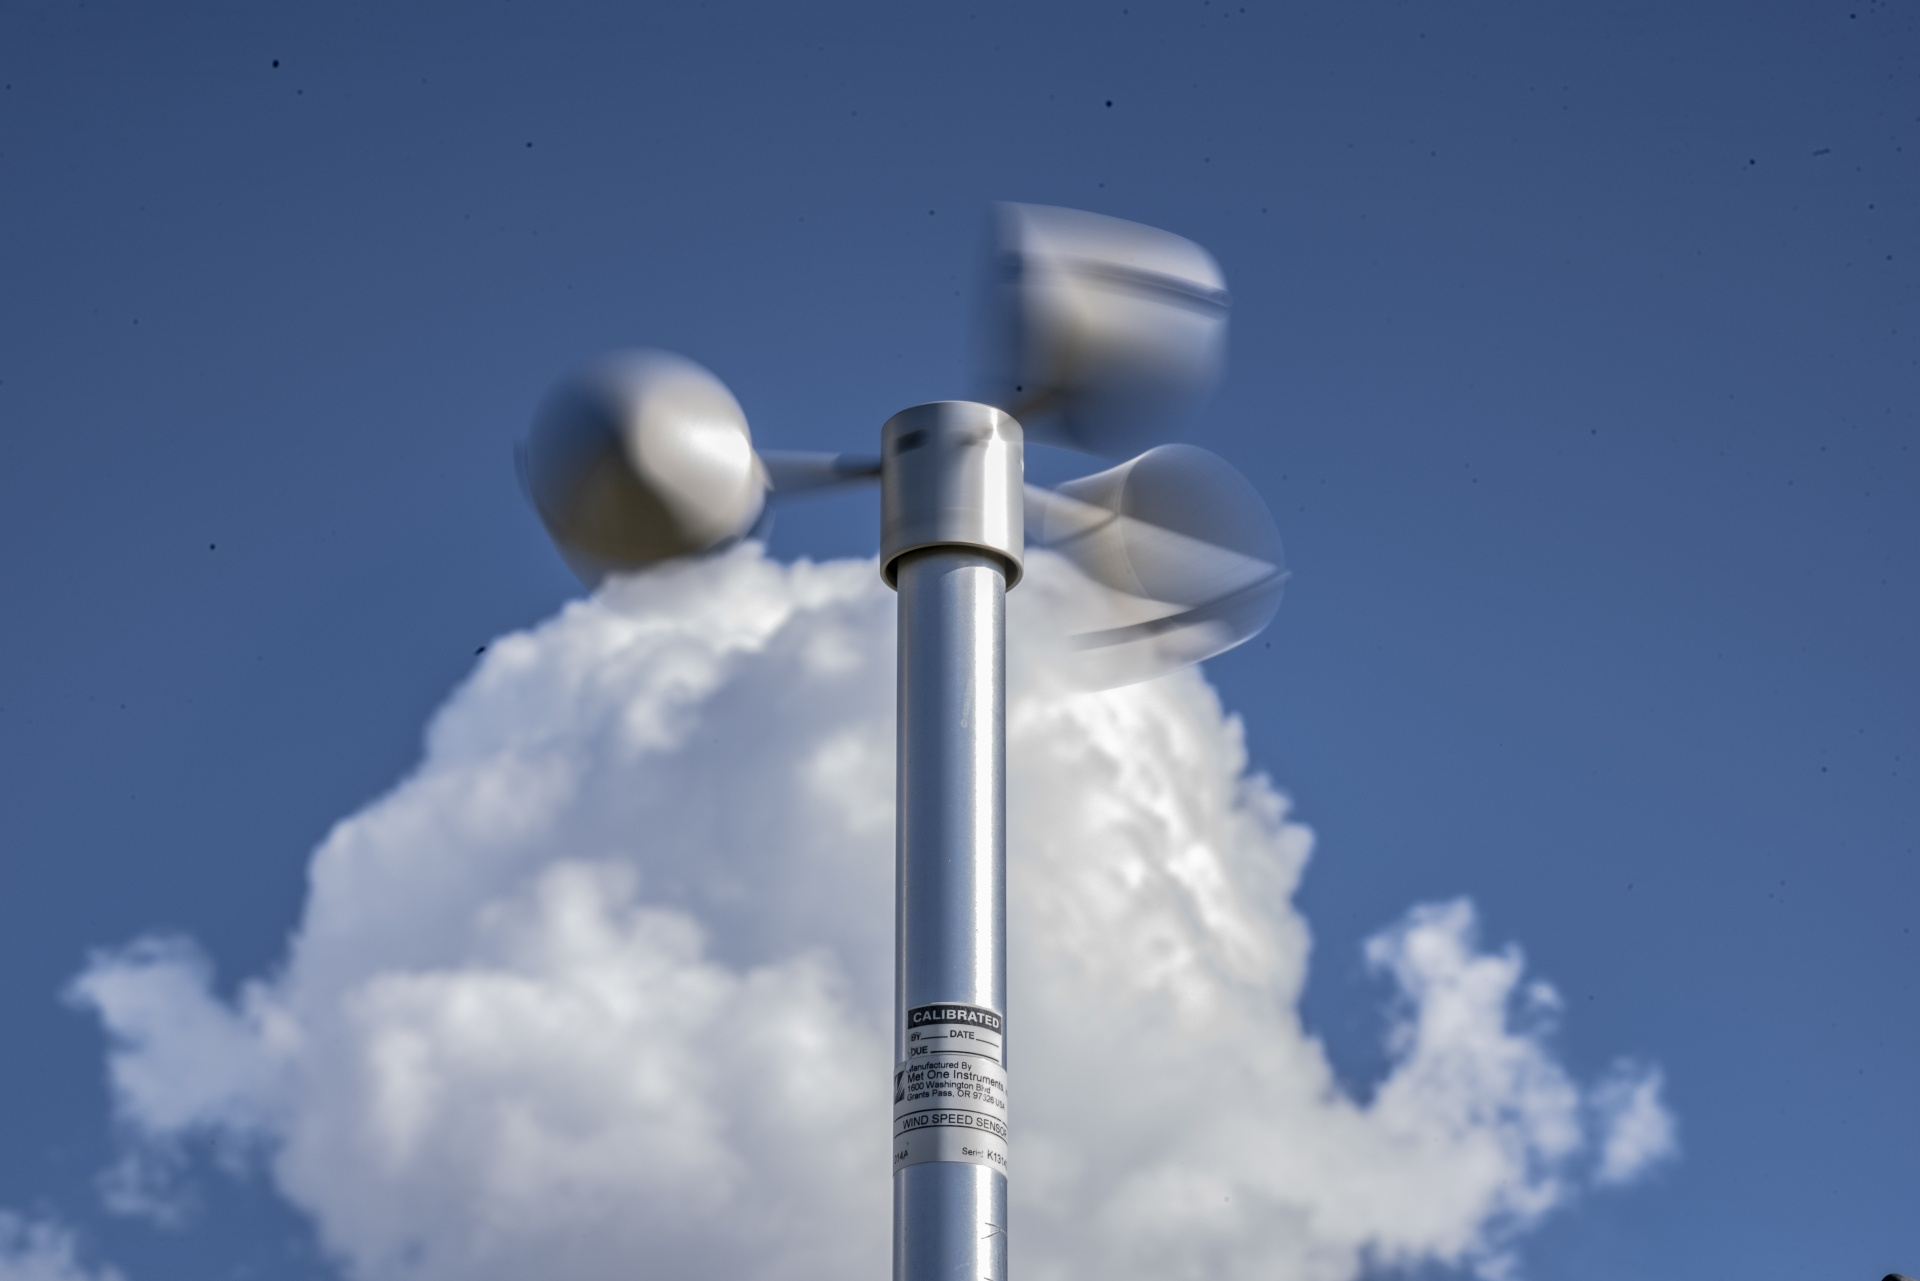 wind-and-weather-instrument.jpg